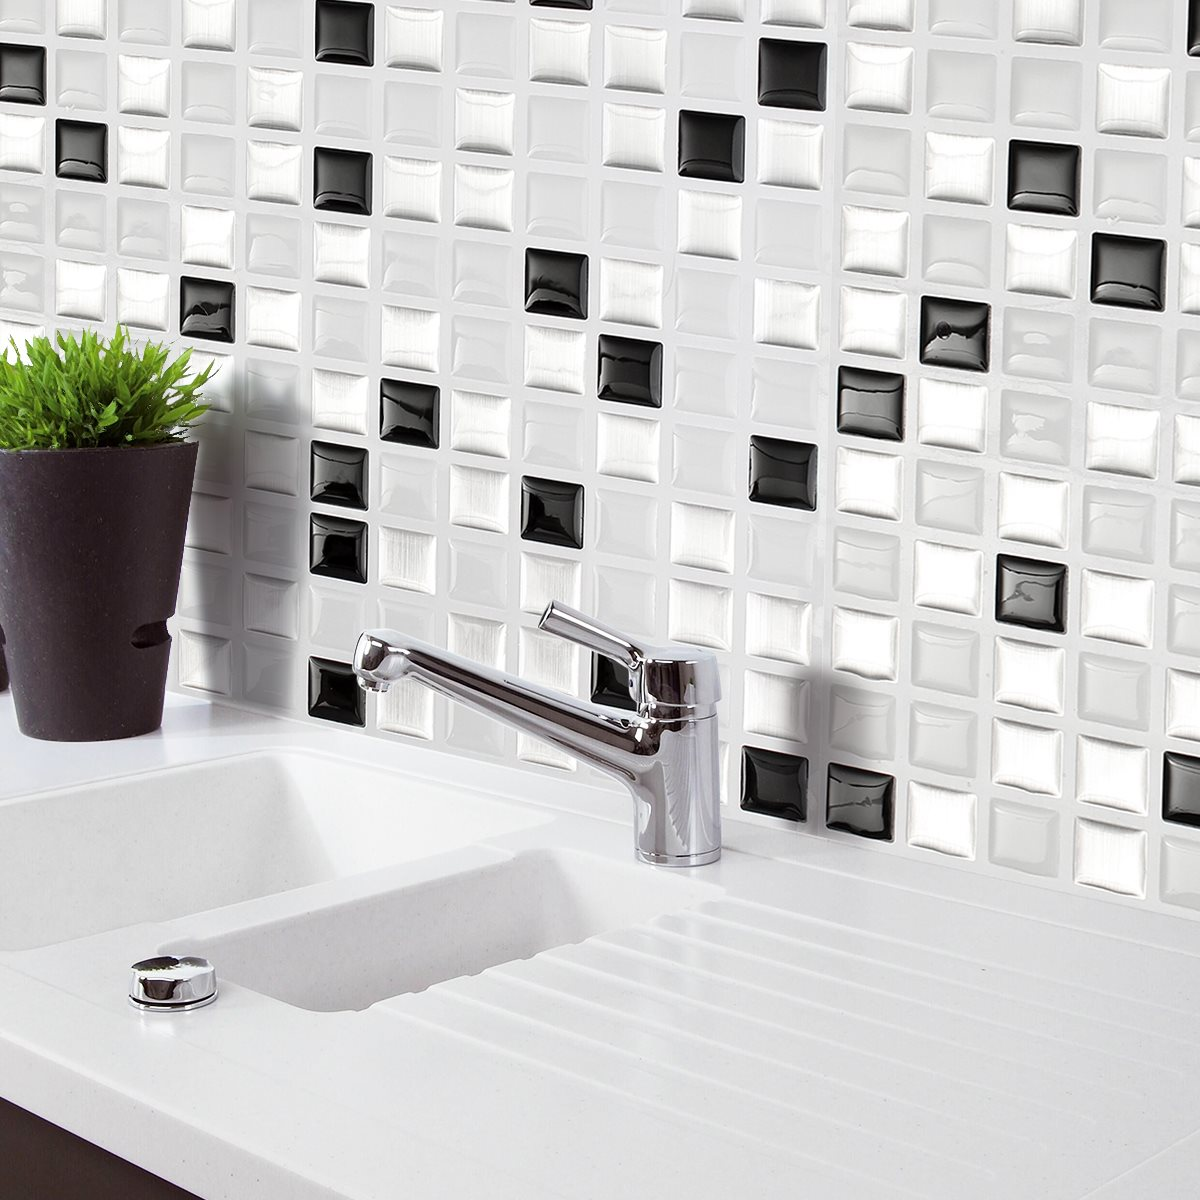 popular mosaic wall tile-buy cheap mosaic wall tile lots from